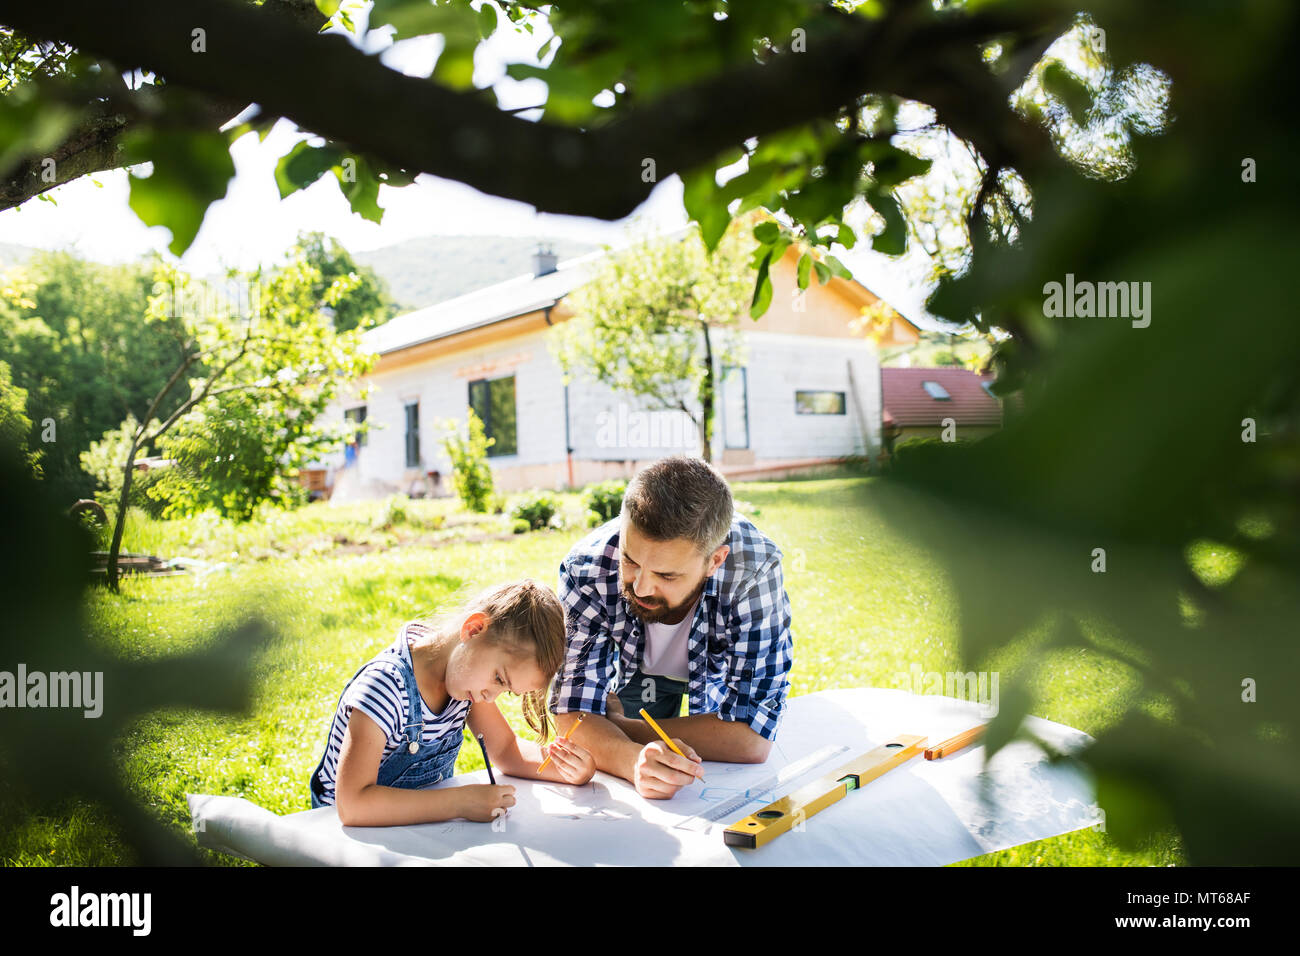 Father with a small daughter outside, planning wooden birdhouse. - Stock Image